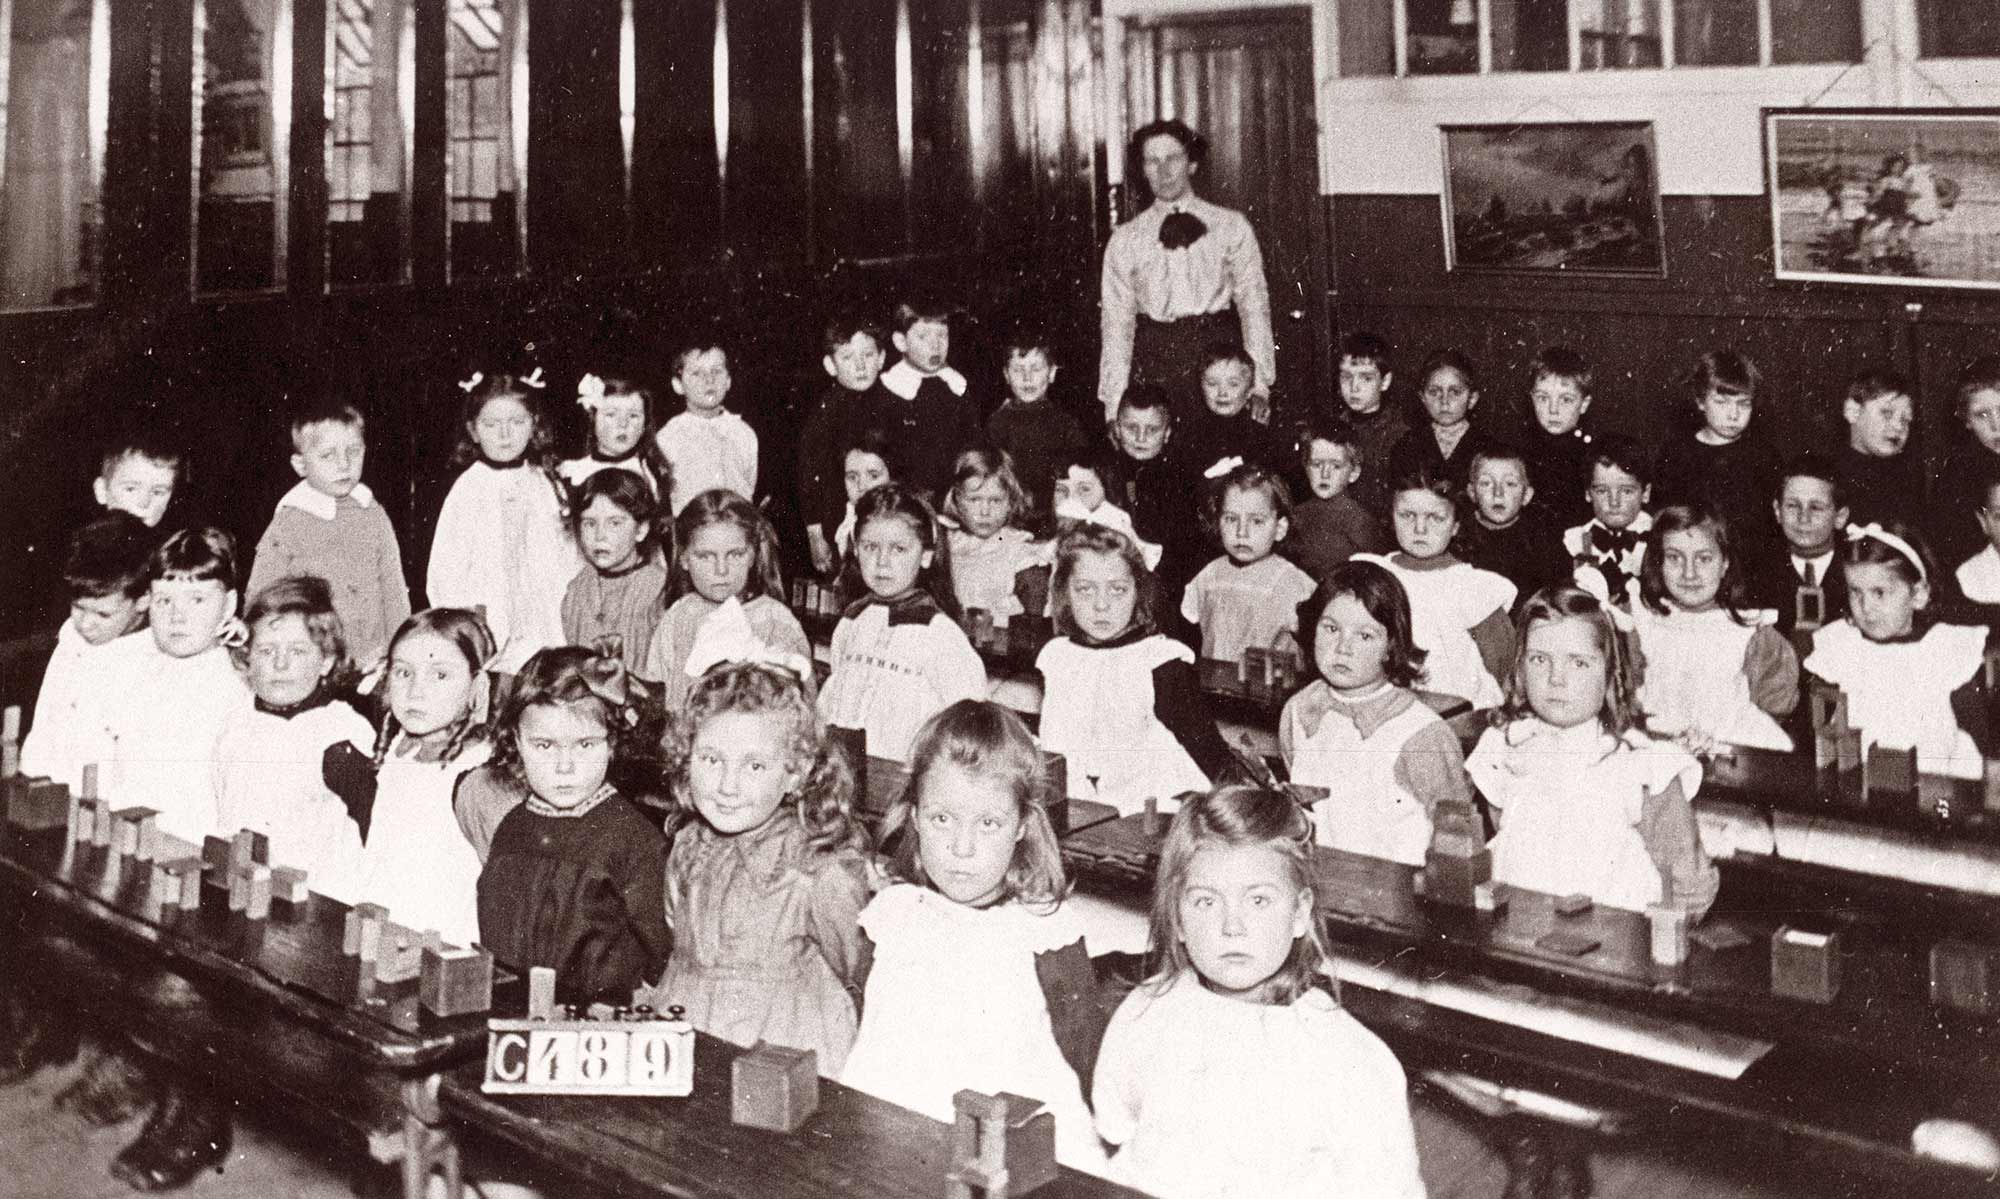 Schoolchildren at St. Mark's School c.1915 - Leicester and Leicestershire Record Office